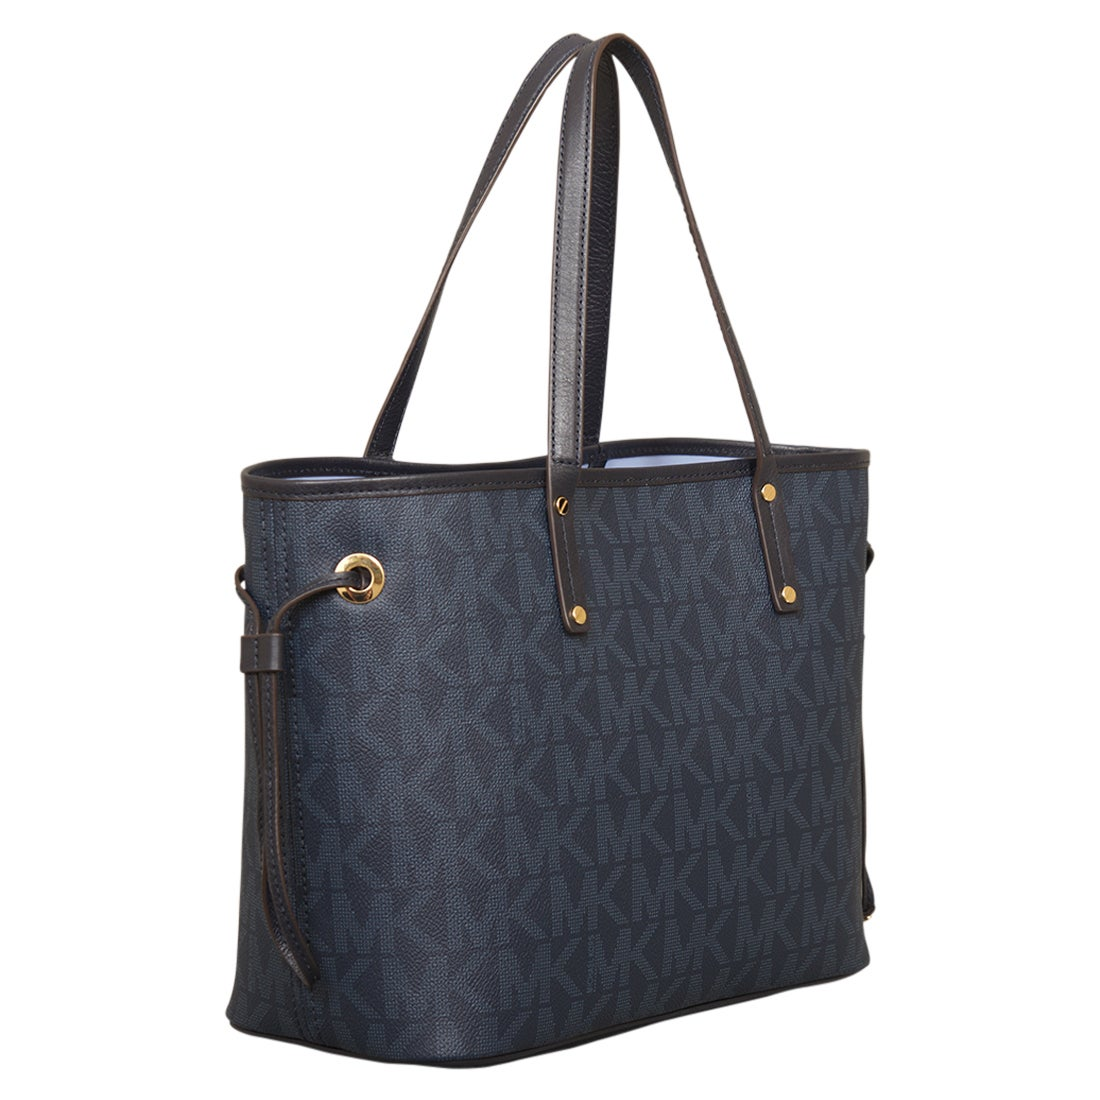 26a38f39ec6a ... purchase shop michael kors medium jet set baltic blue reversible tote  bag free shipping today overstock ...